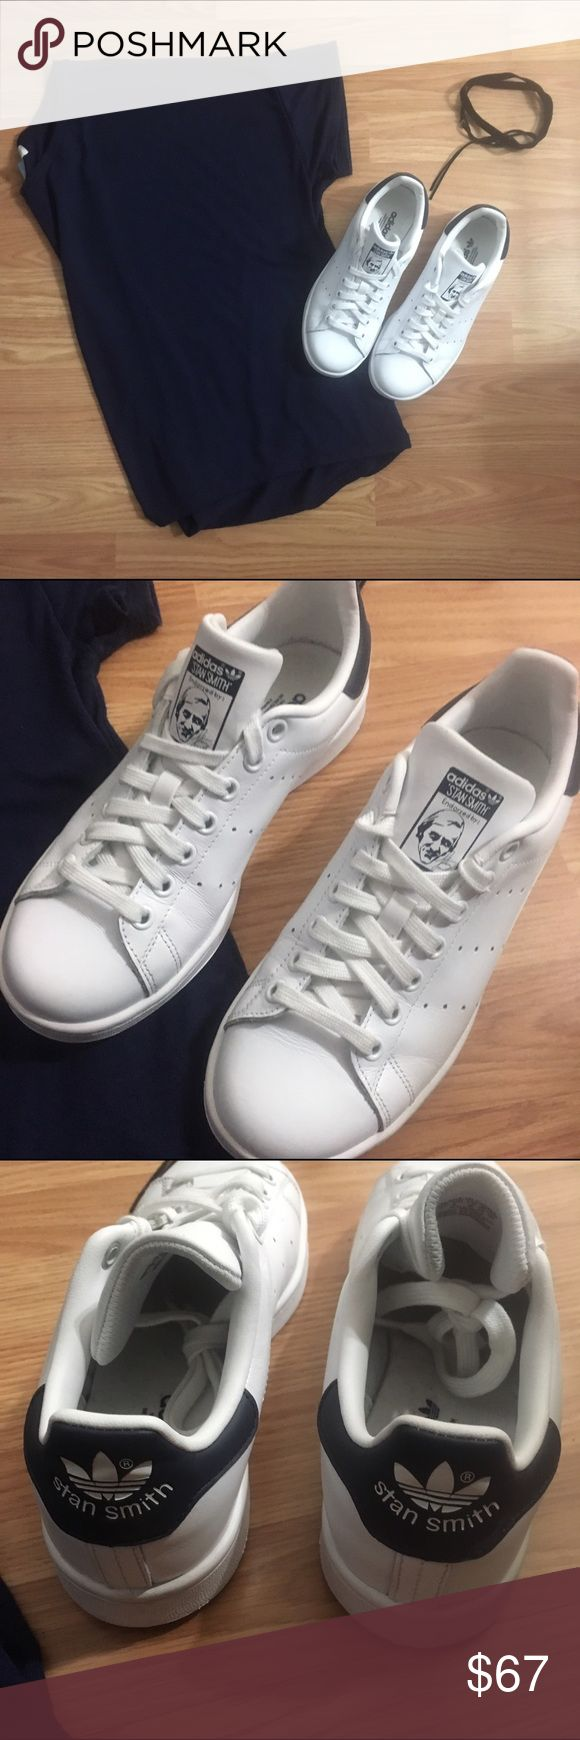 Adidas Stan Smith Shoes Navy Blue and White Adidas Stan Smith Shoes • Men's 5.5 • Women's 7.5 Adidas Shoes Sneakers